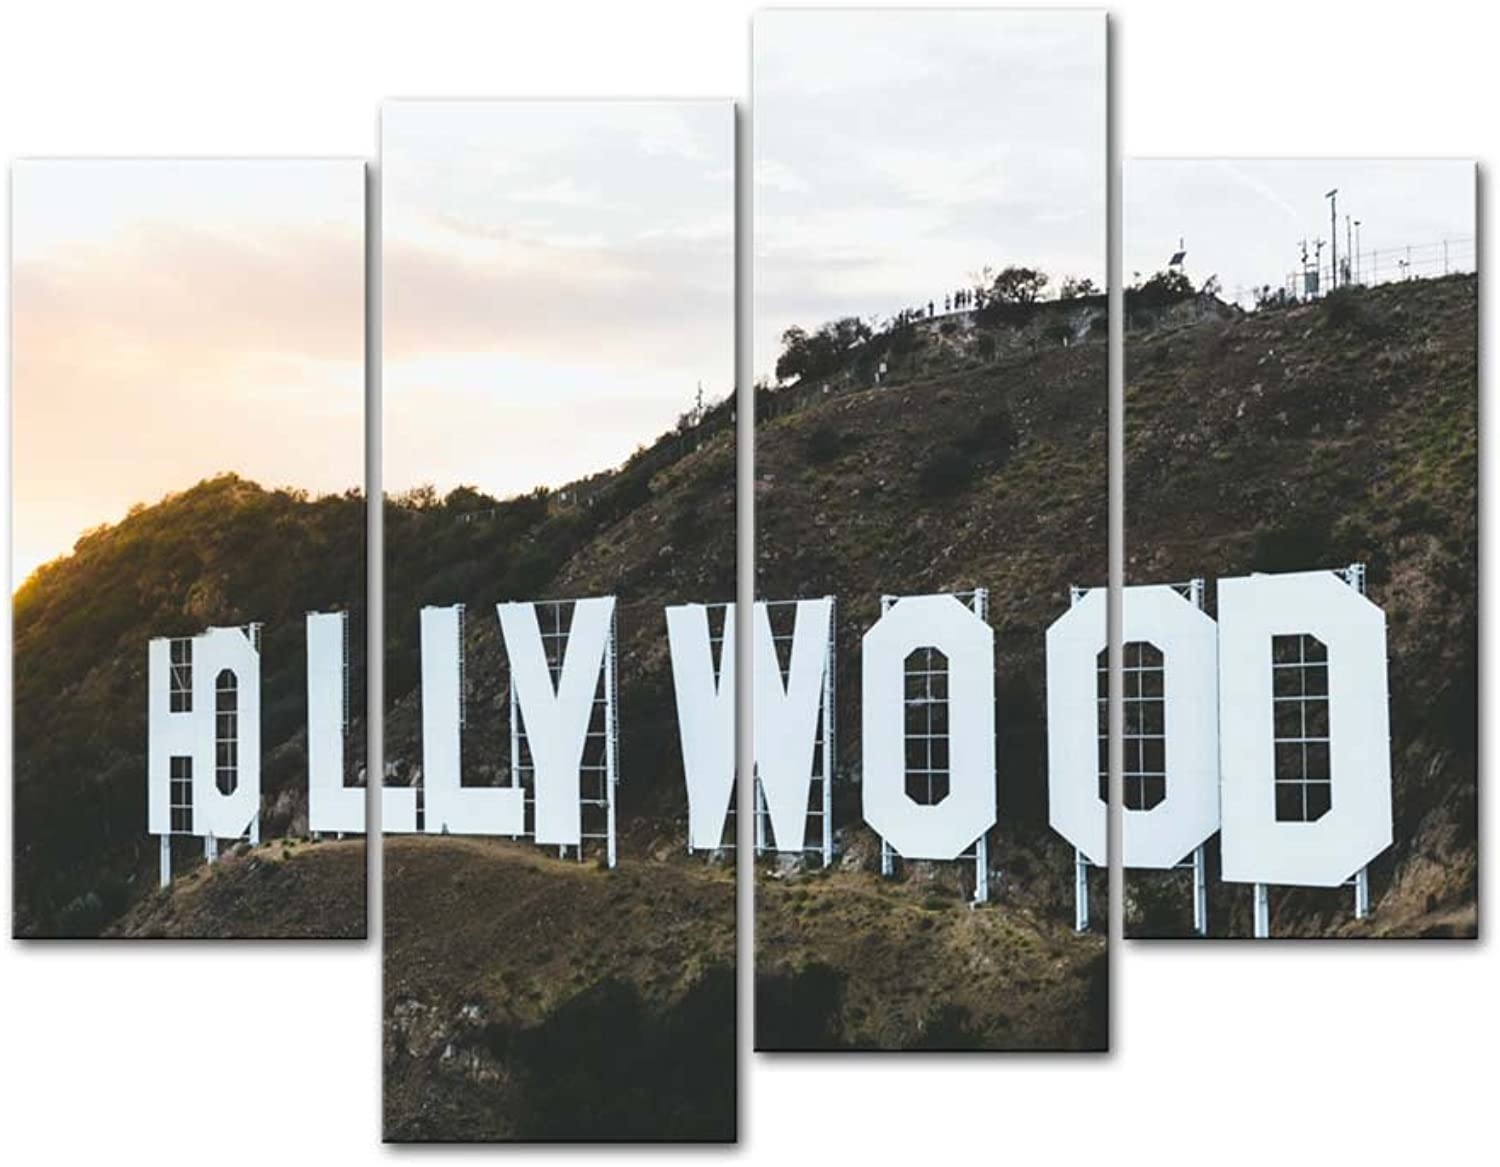 Canvas Print Wall Art Decor Hollywood Picture Place Name Letter On Hill Pictures Landscape Artwork USA City Poster Prints Stretched On Wooden Frame 4 Panel Image For Home Living Room Office Decoration